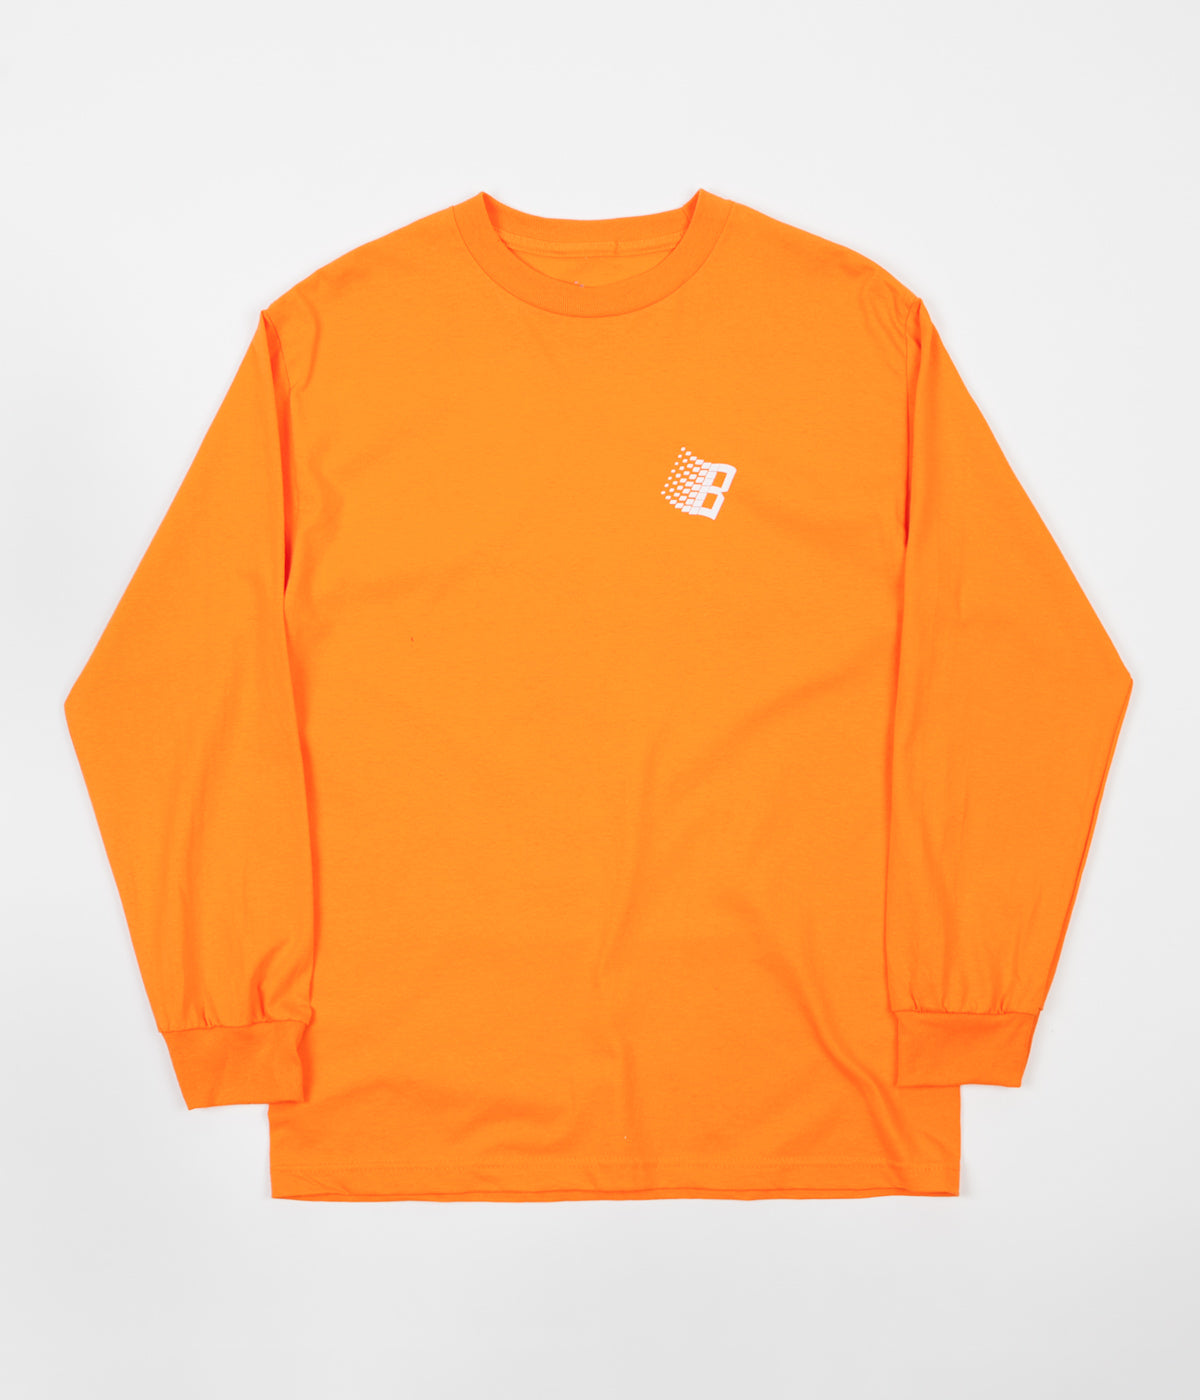 Bronze 56K B Logo Long Sleeve T-Shirt - Orange / White